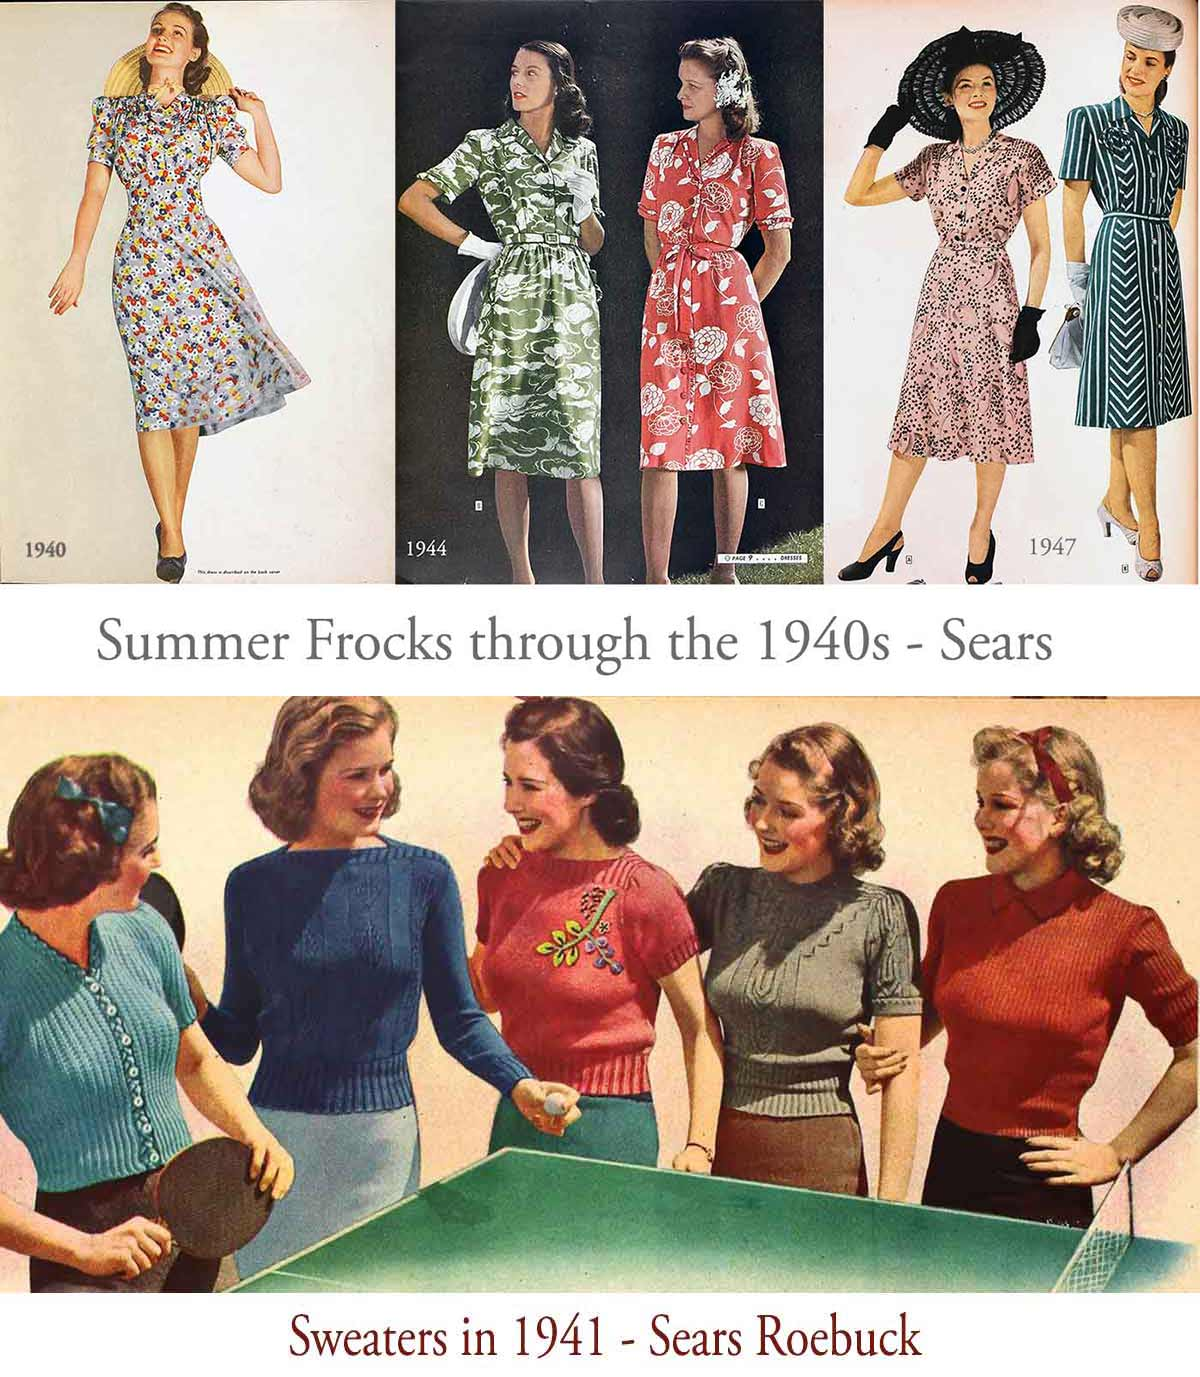 1940s-frocks-and-sweaters-sears